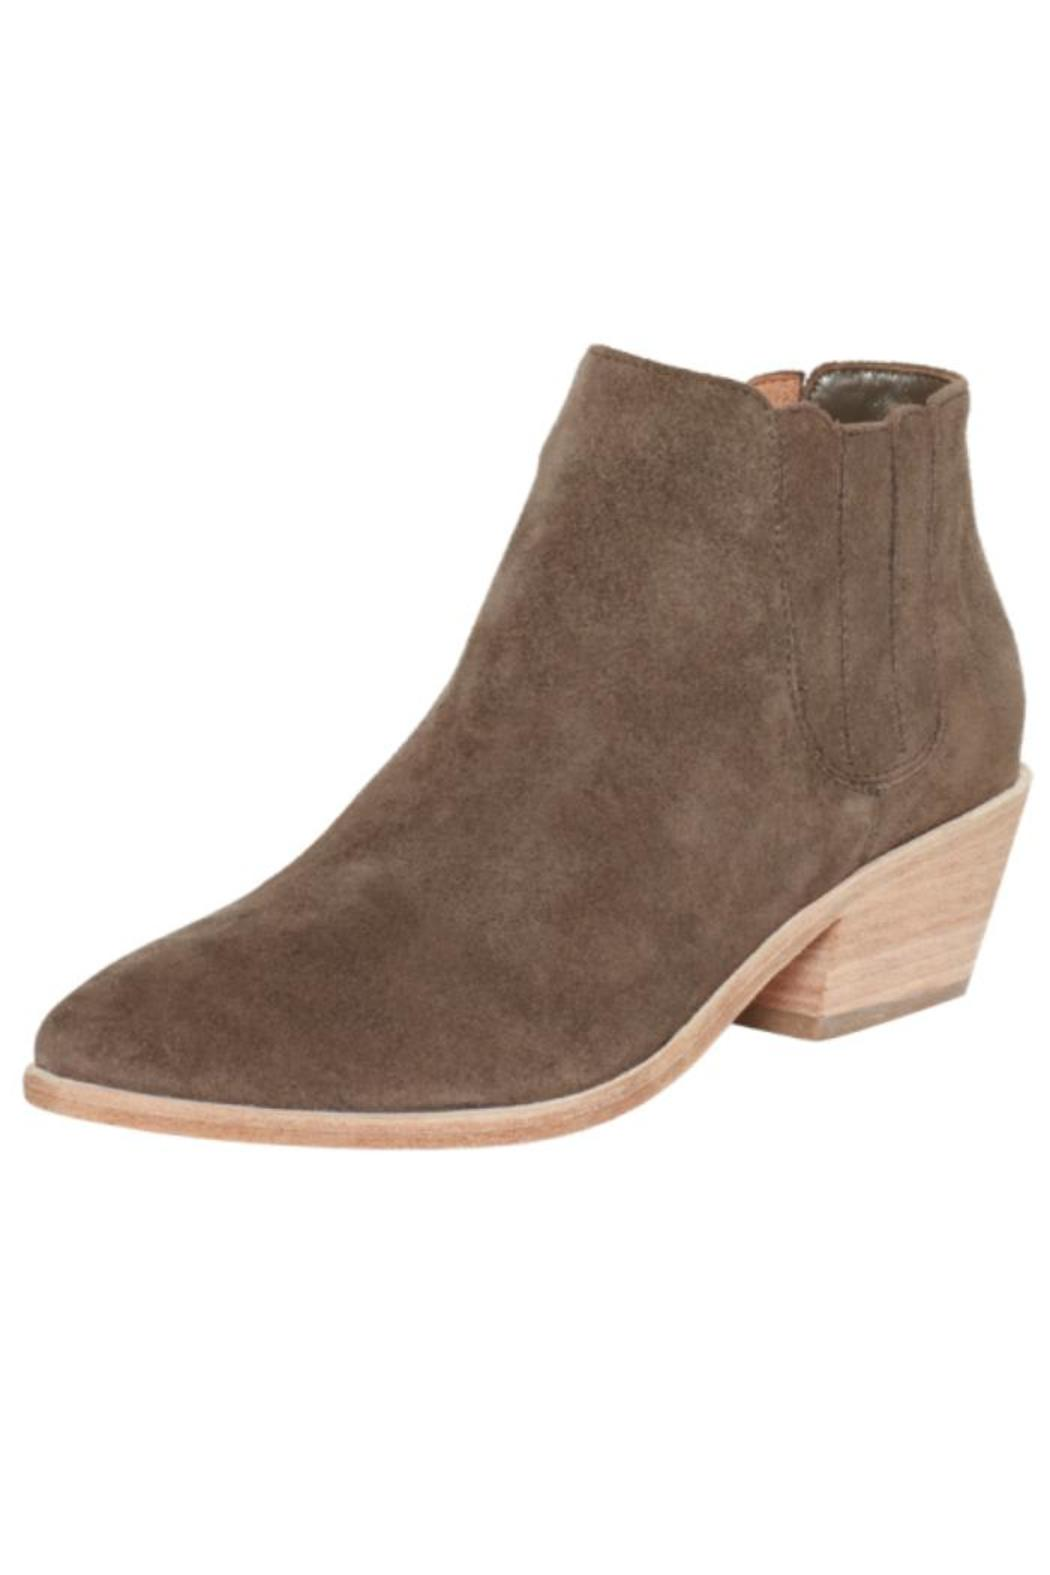 Joie Barlow Charcoal Booties - Front Cropped Image